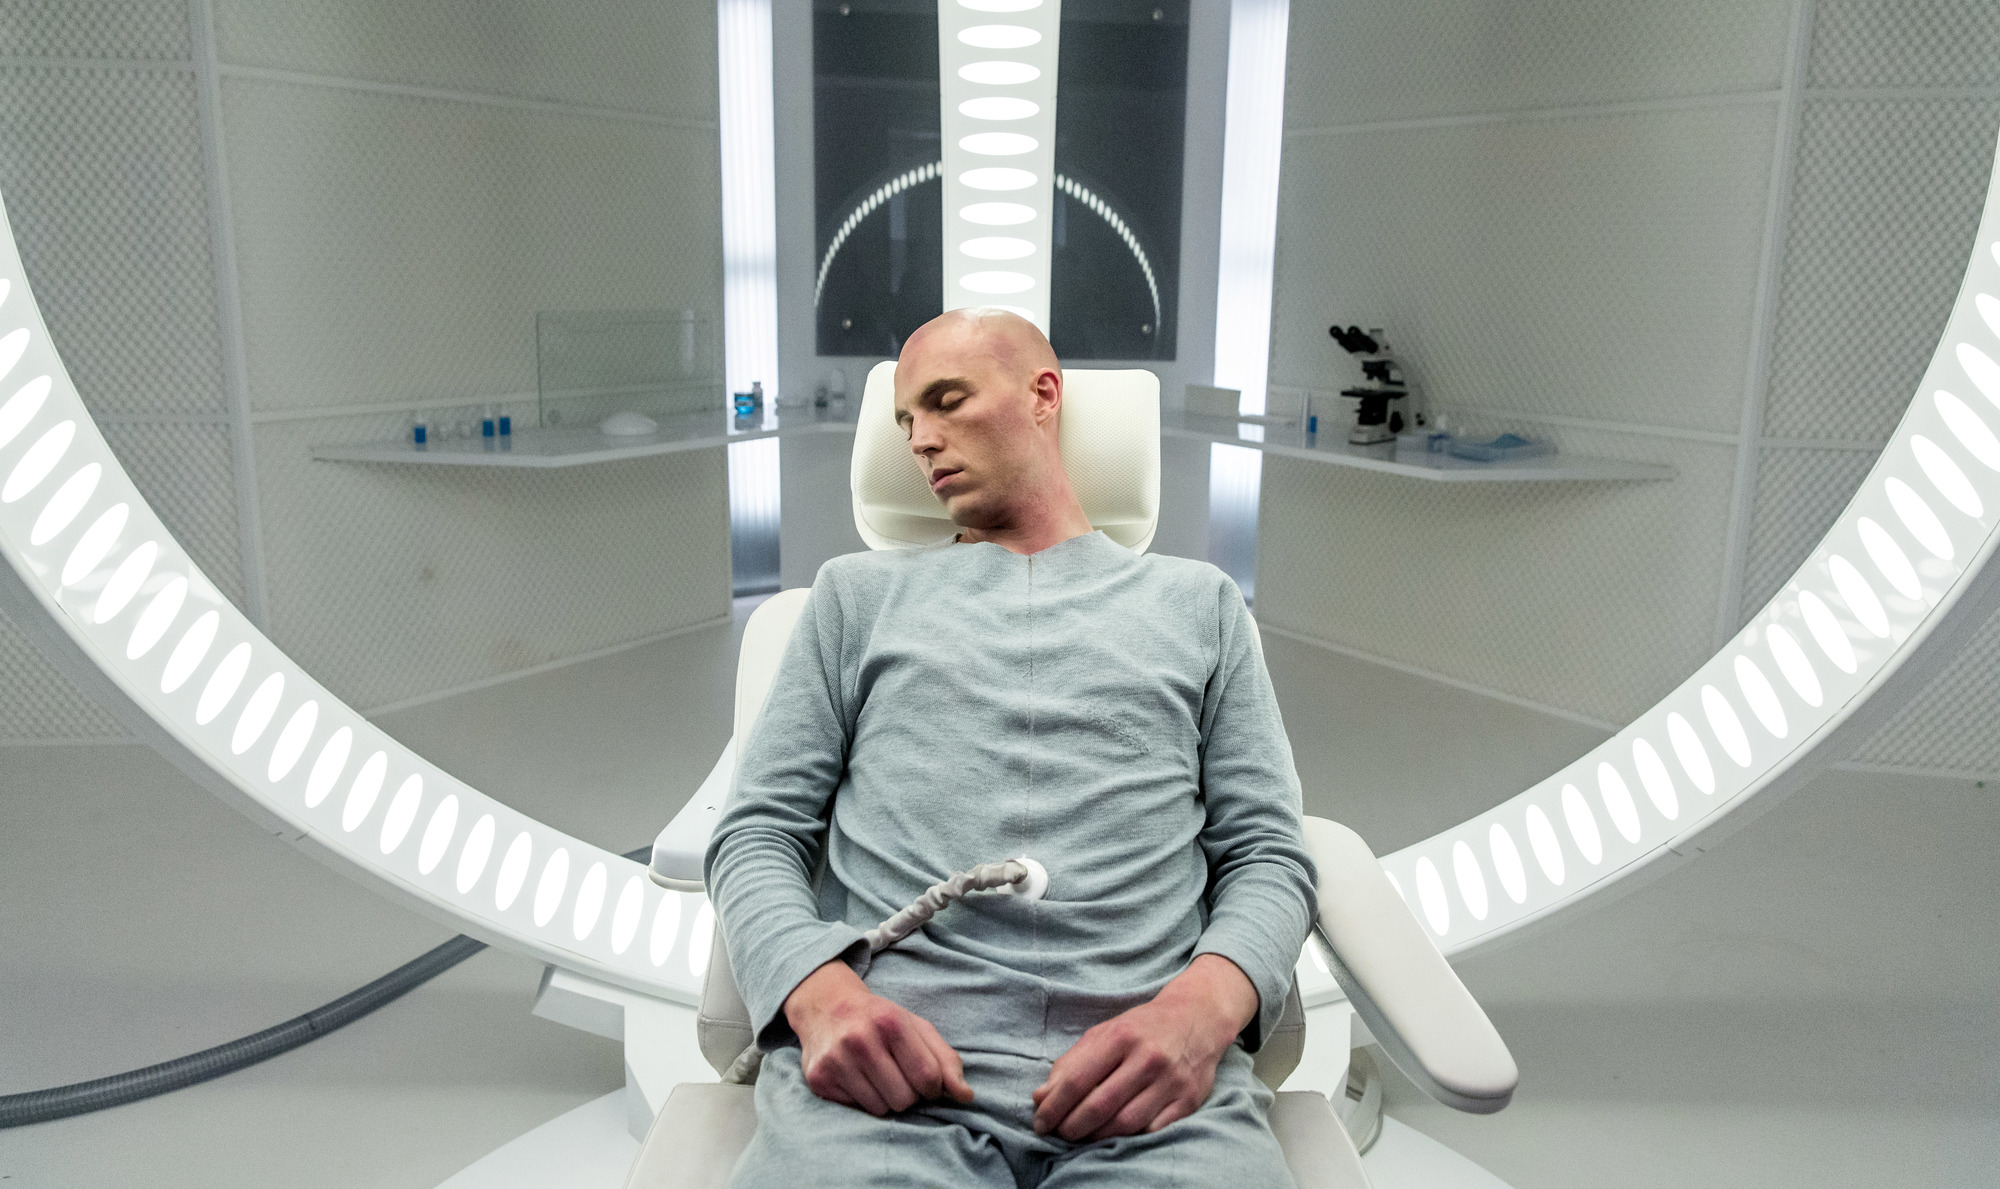 'Realive' confuses navel-gazing for philosophical depth